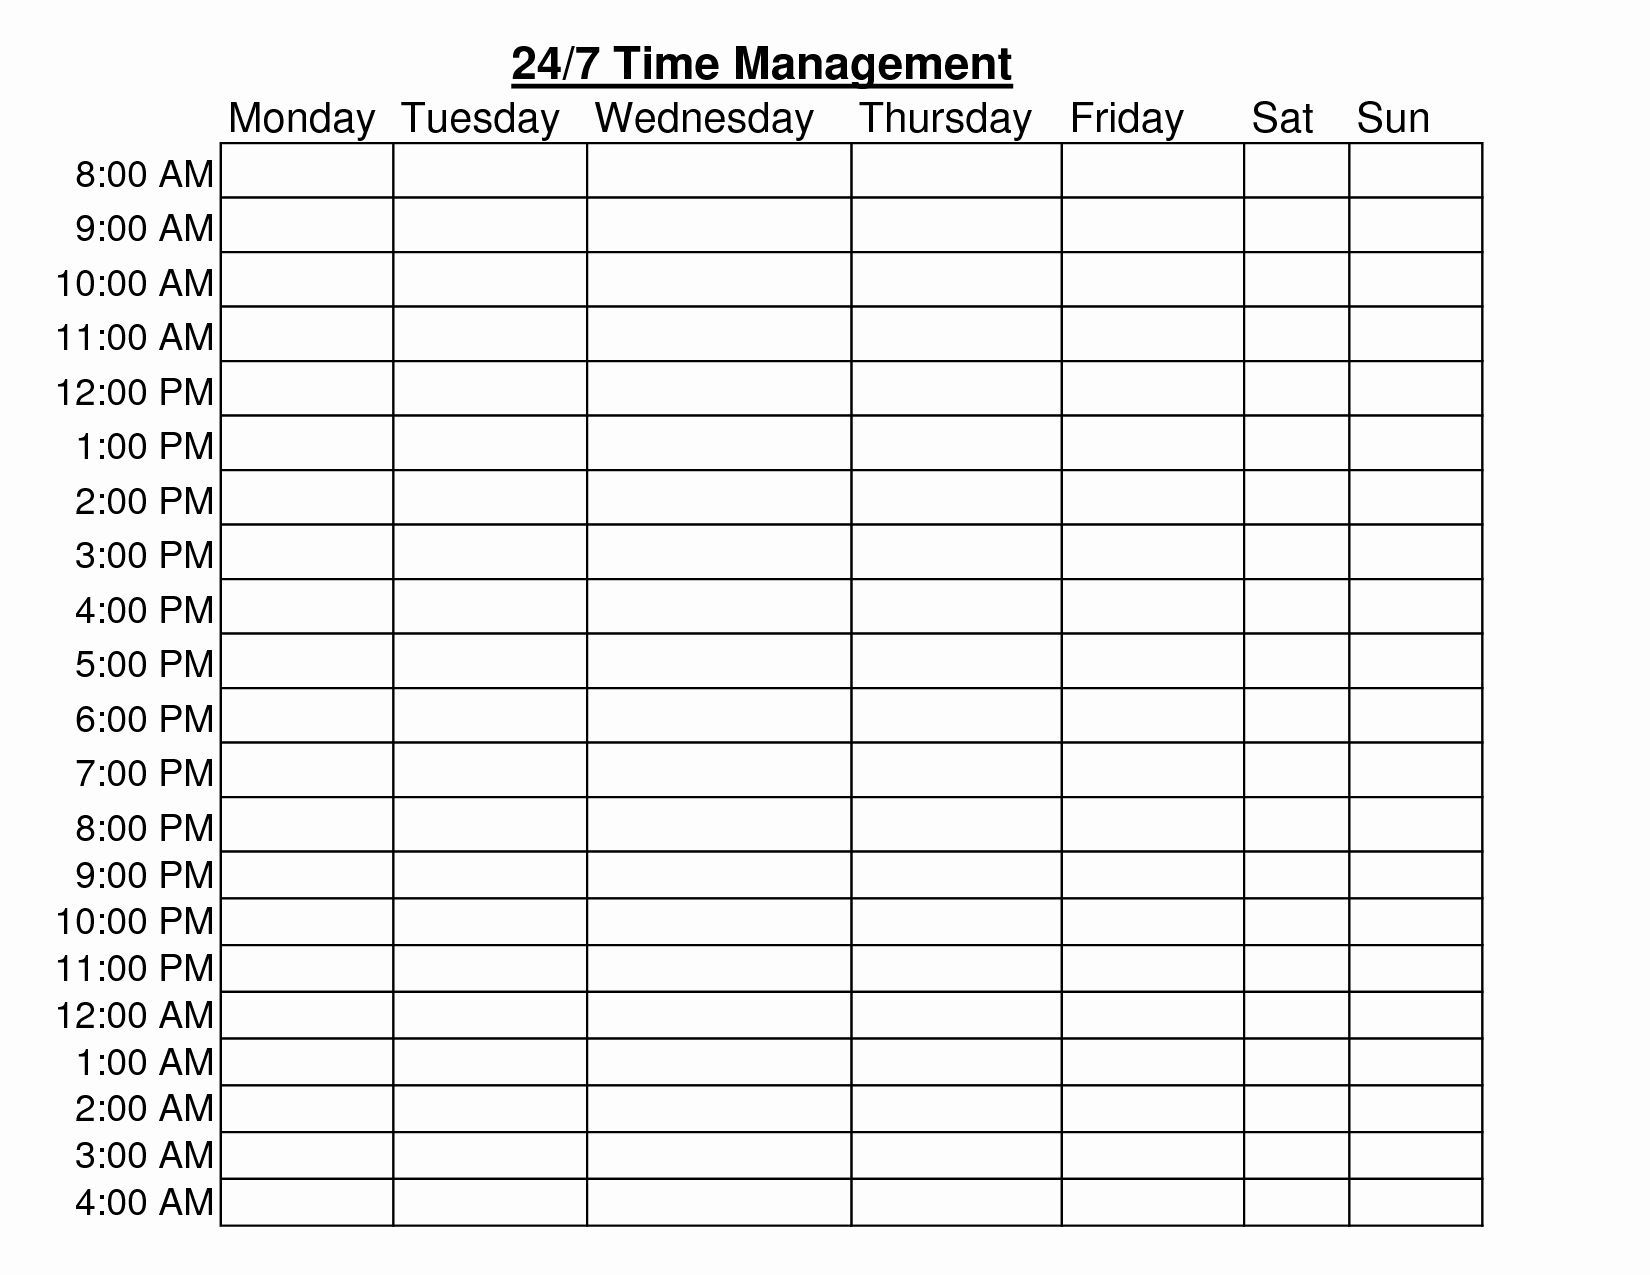 24 hour schedule template elegant 24 hour time management